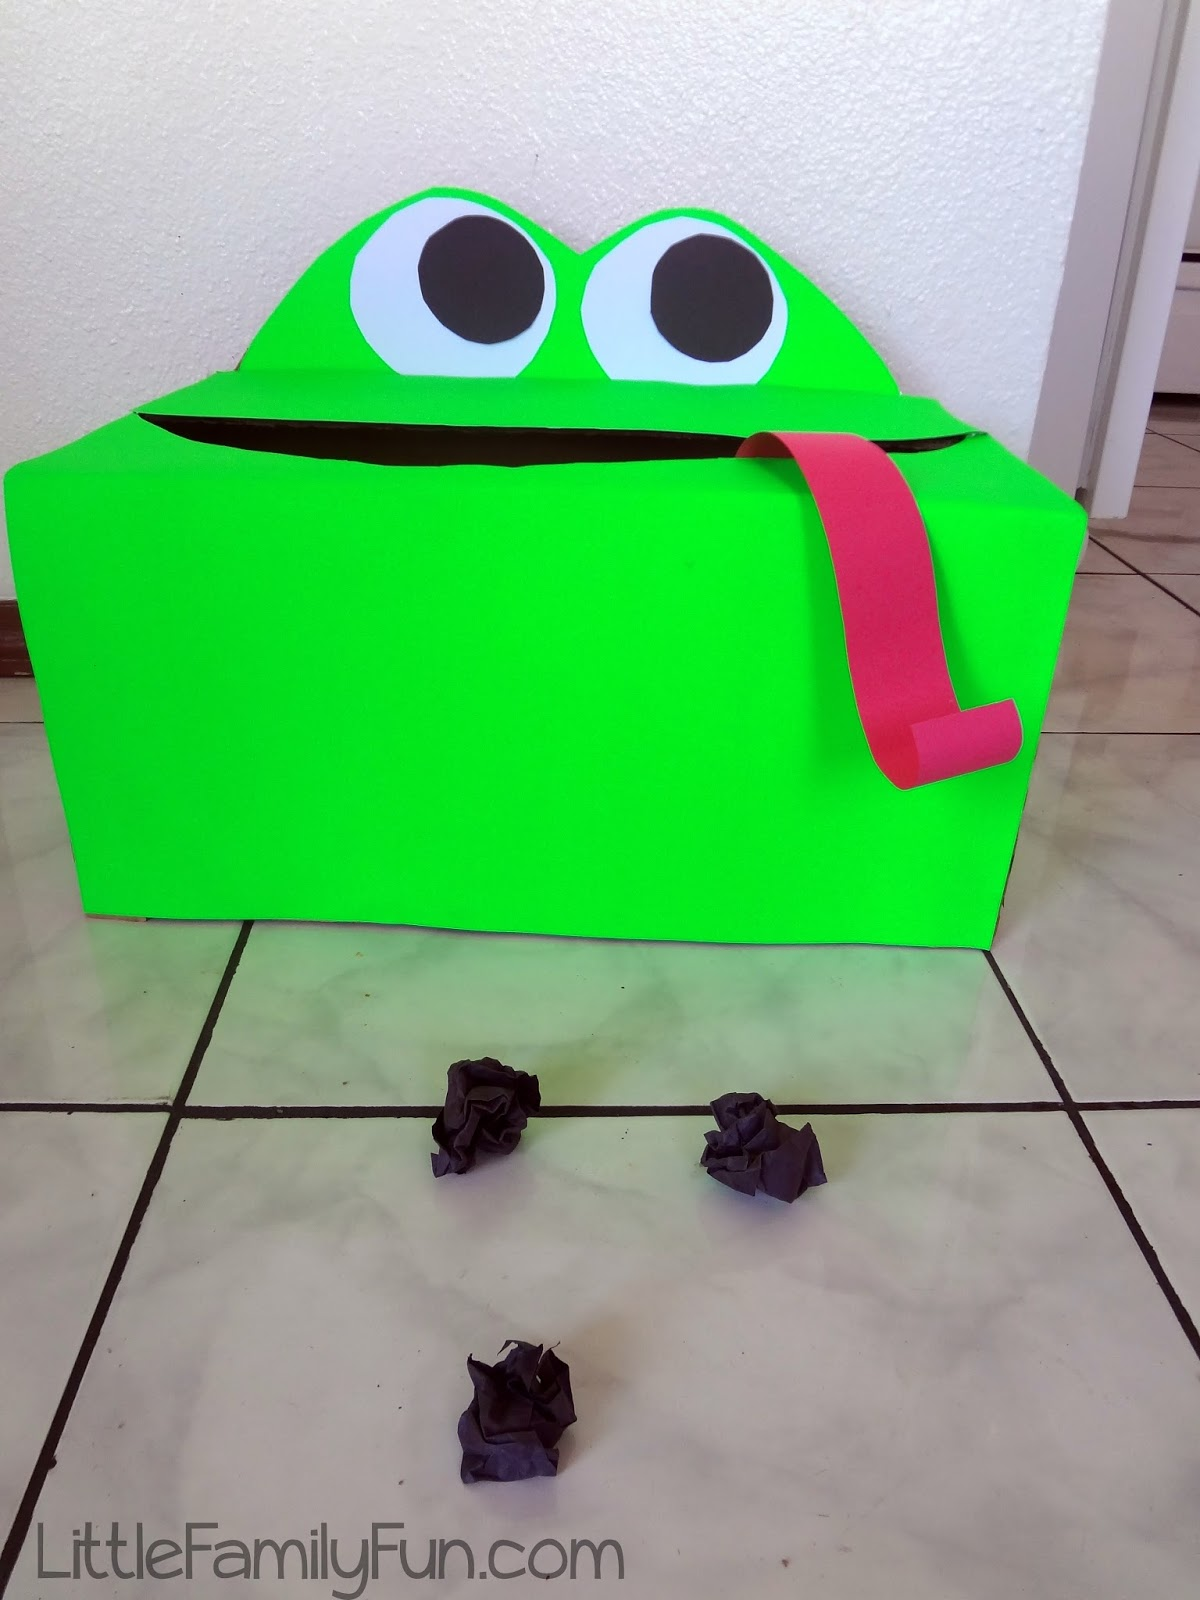 little family fun frog toss game for kids